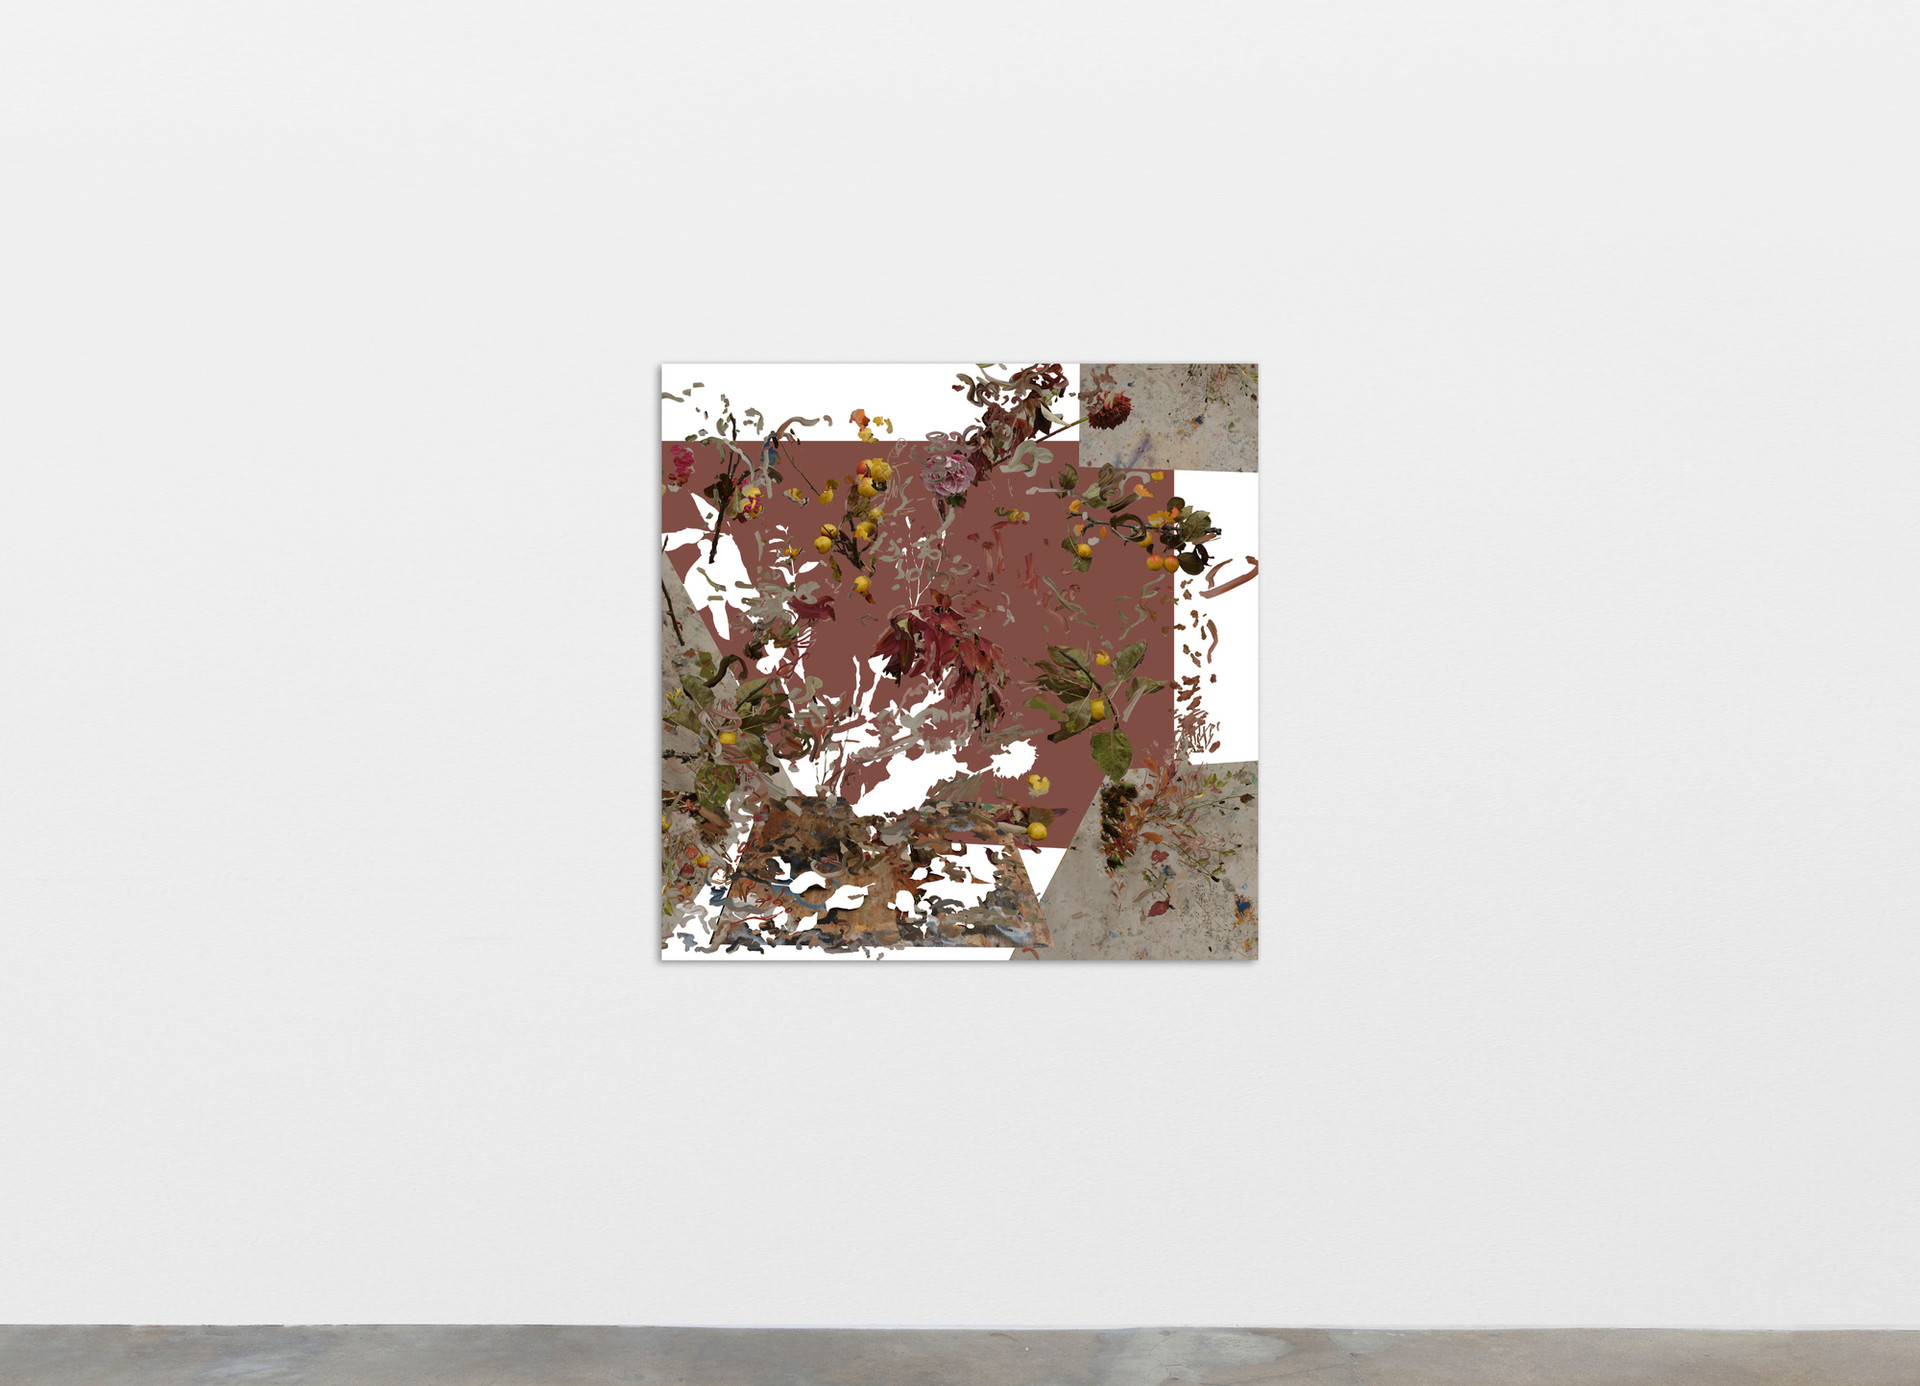 Petra Cortright cinema+godzilla COIL FEEDERS_COMLTE WORKS OF SHAKESPEAREE, 2020 Digital painting on anodized aluminum 83.82 x 83.82 cm 33 x 33 in